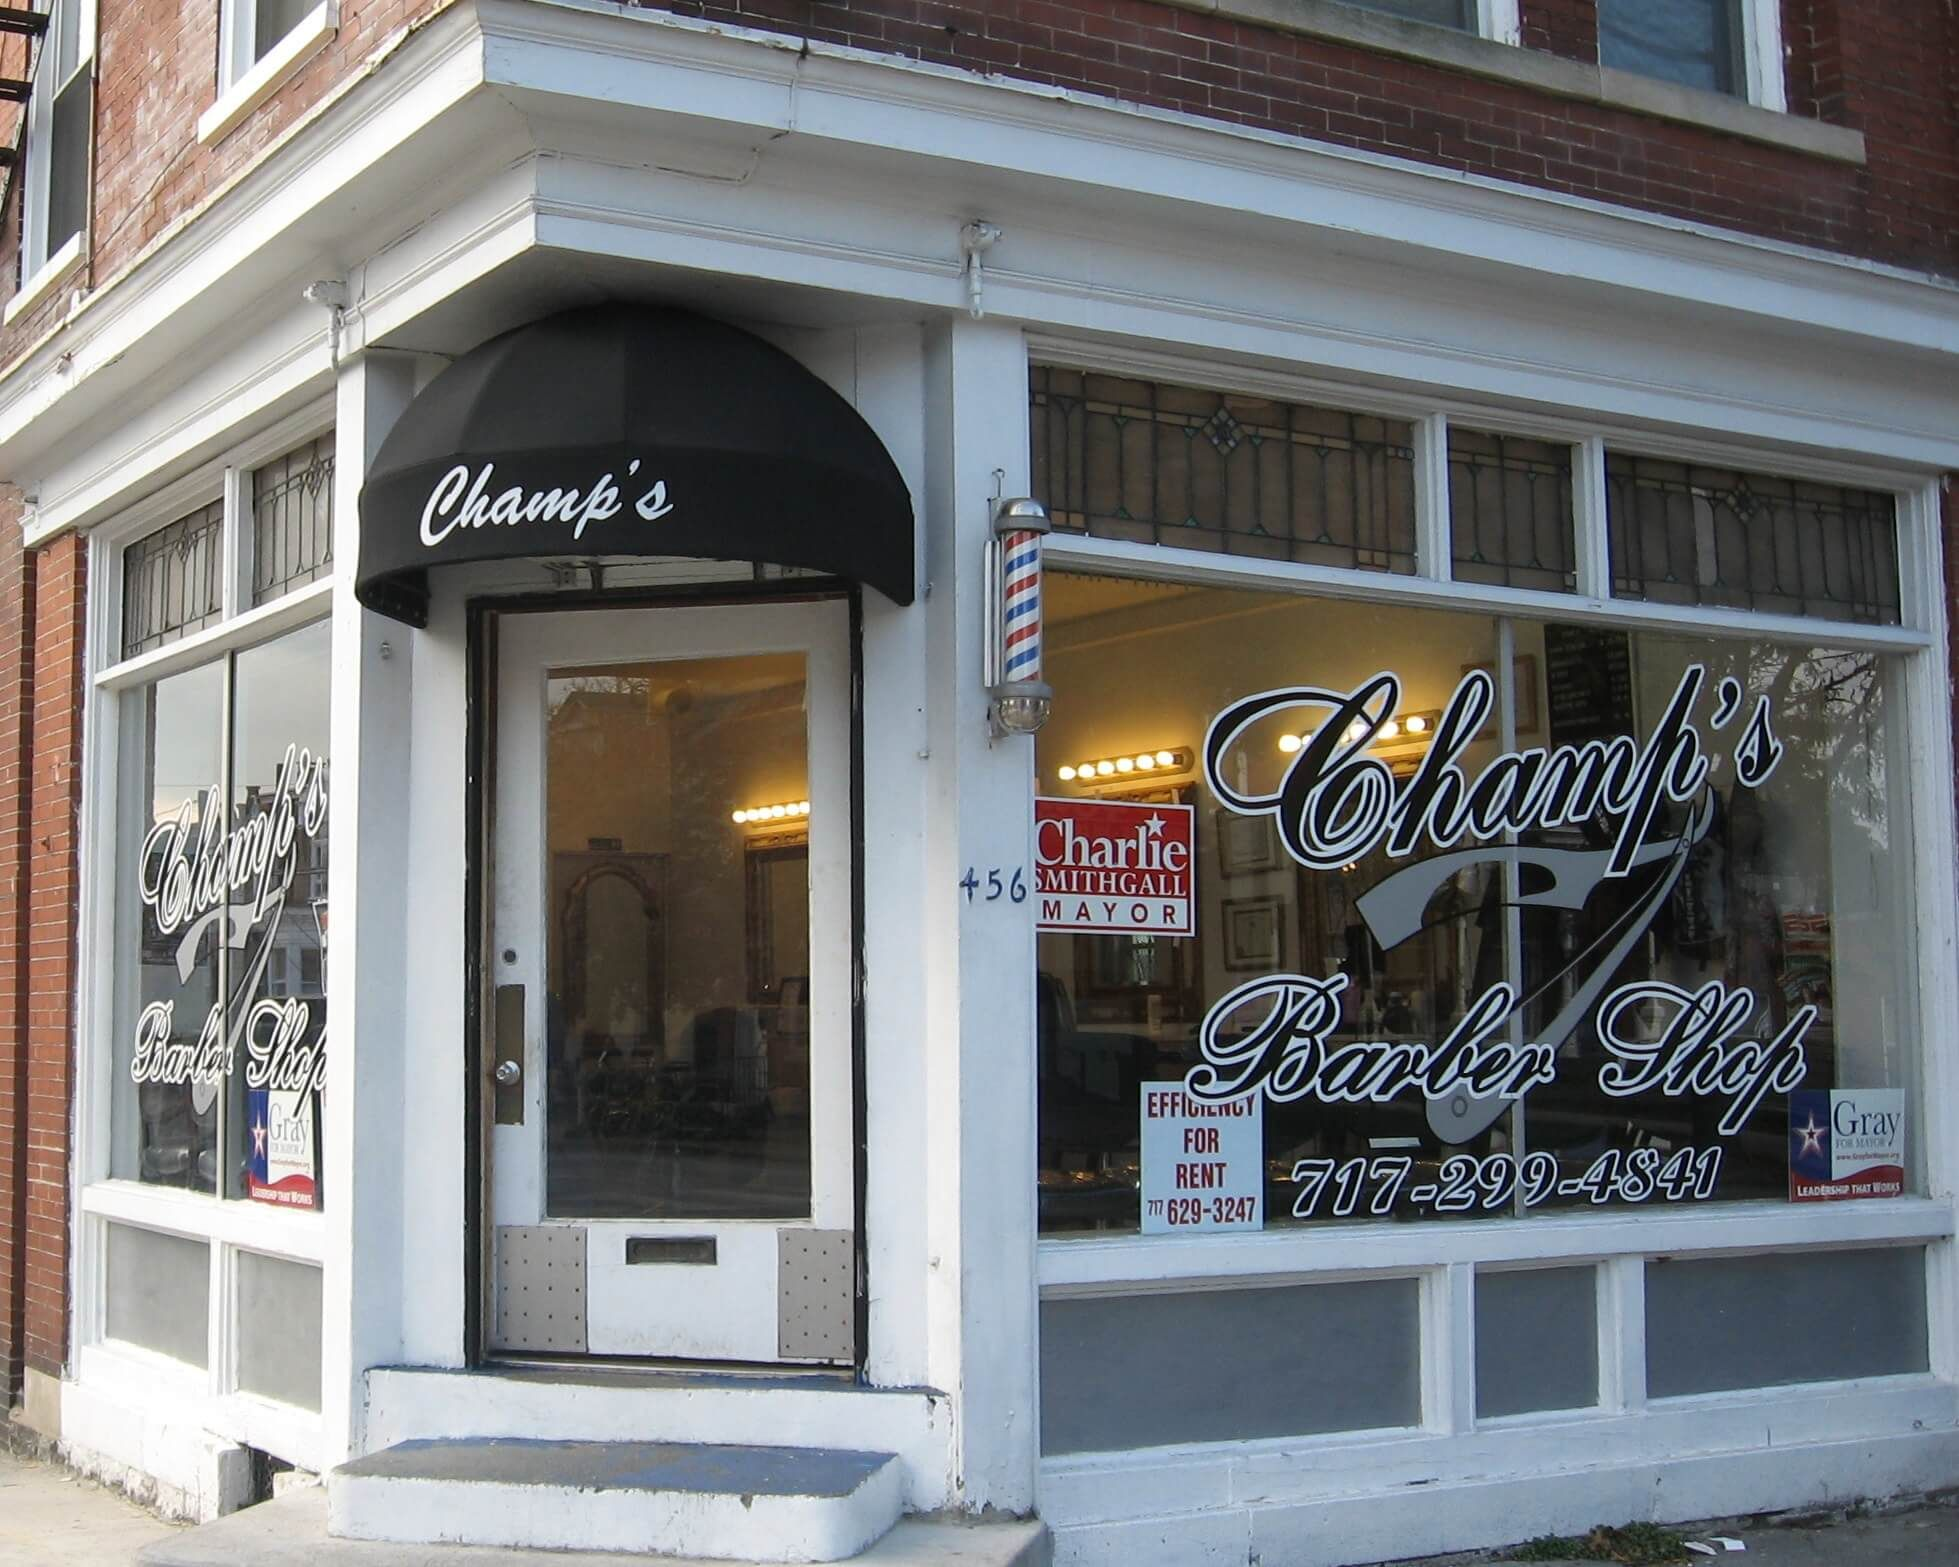 Round Door Awning With Name Of Barber Shop Applied To Flat Valance Shop Awning Barber Shop Shop Doors